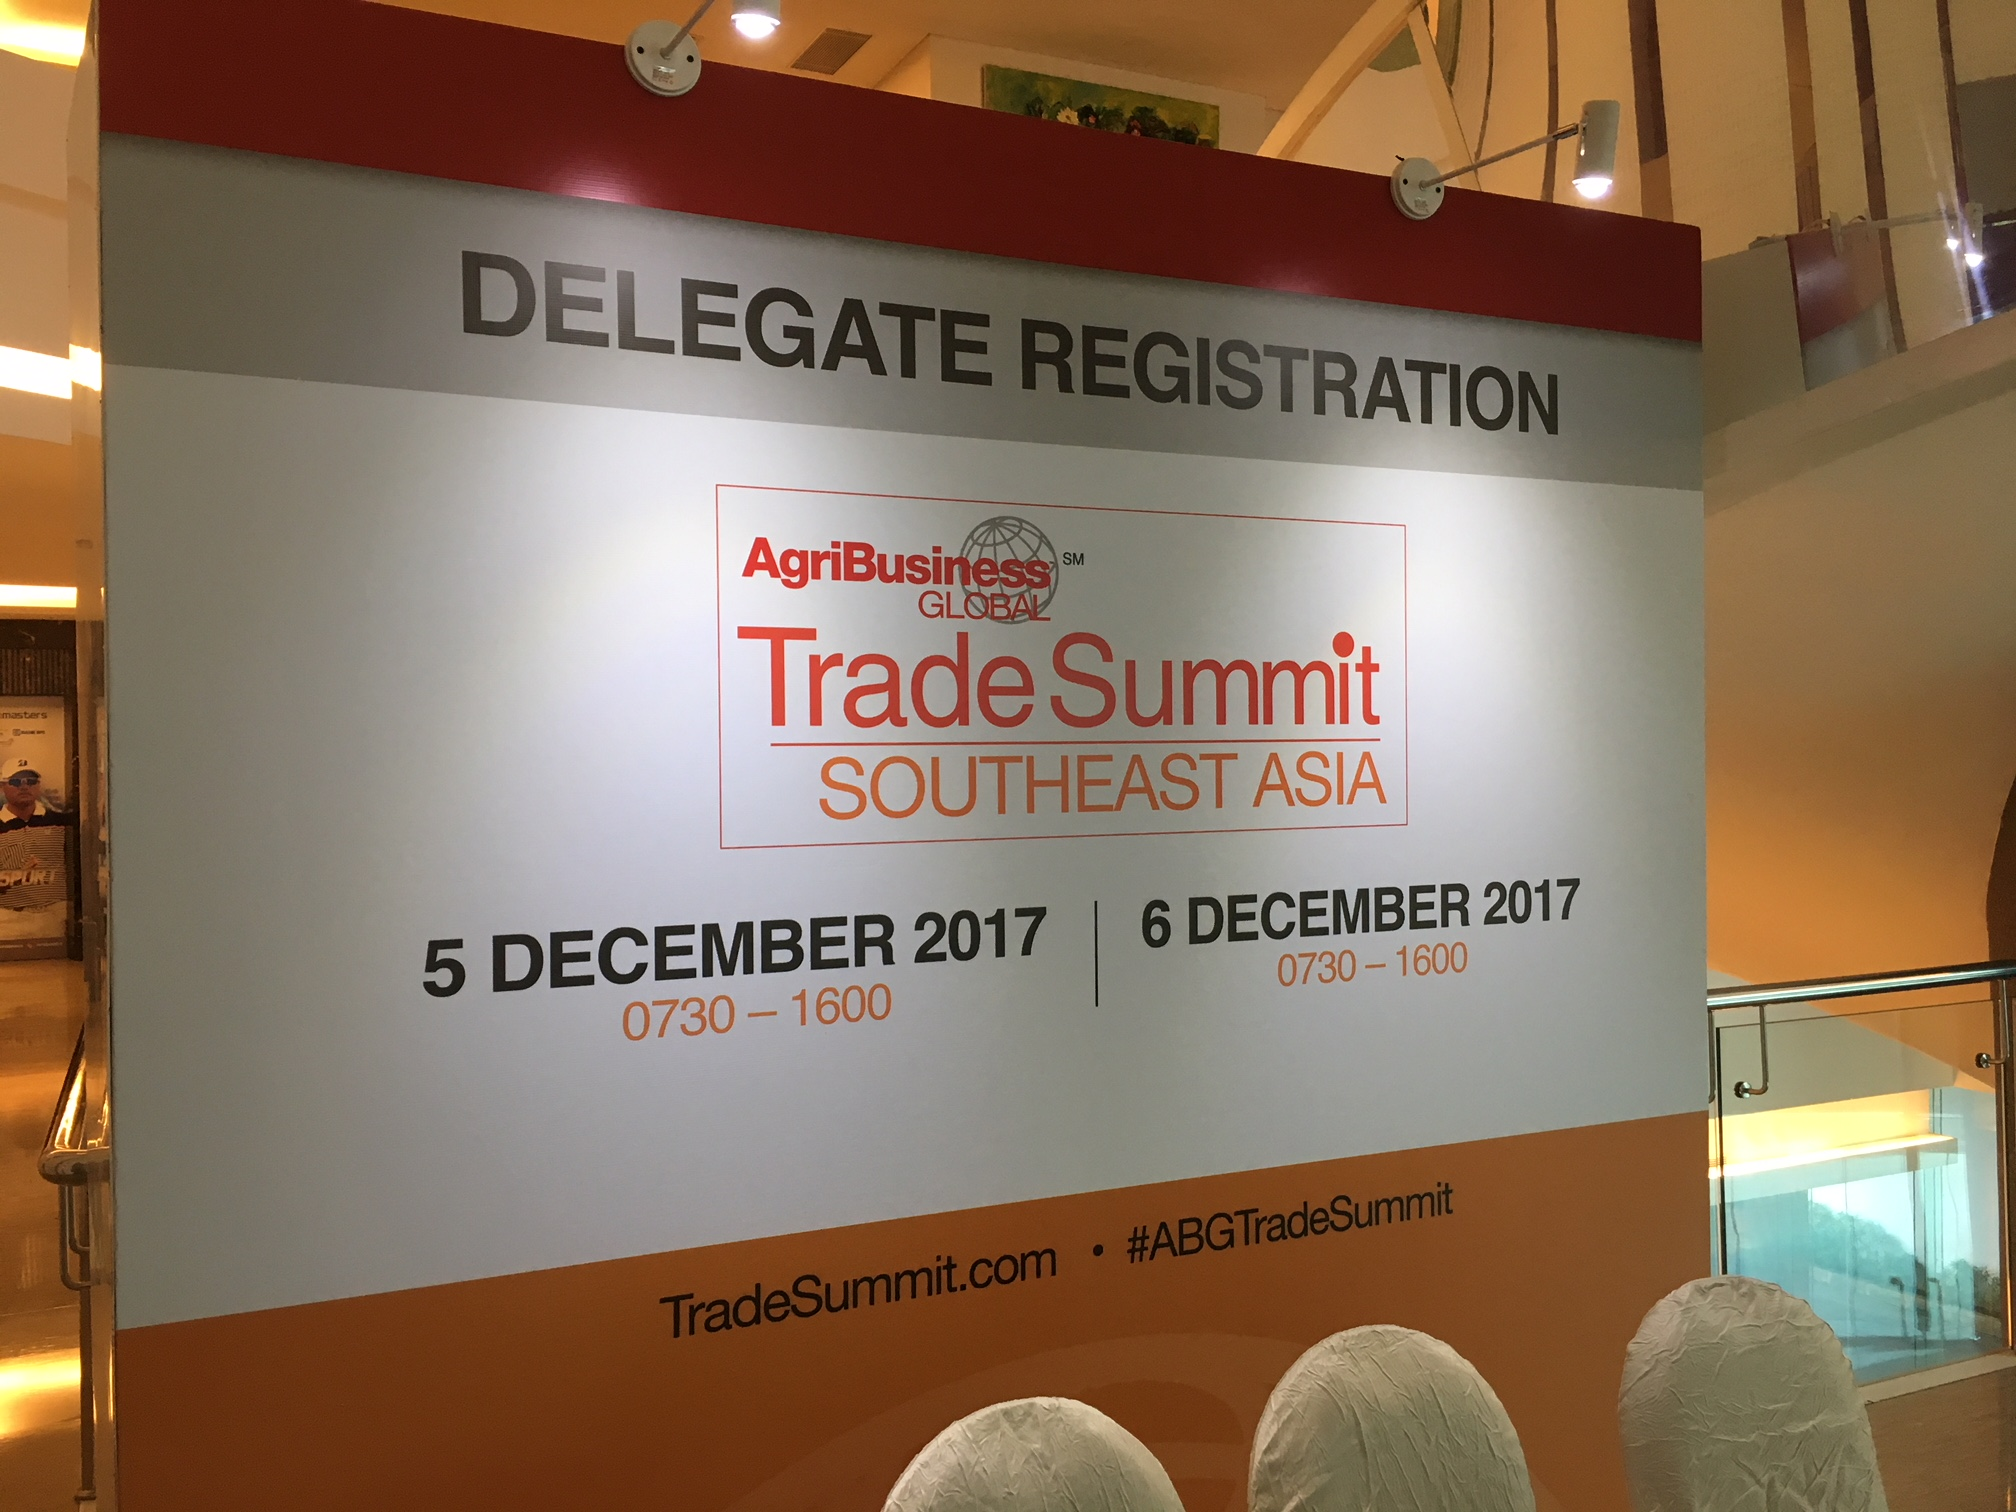 Slideshow: AgriBusiness Global Hosts Trade Summit Southeast Asia